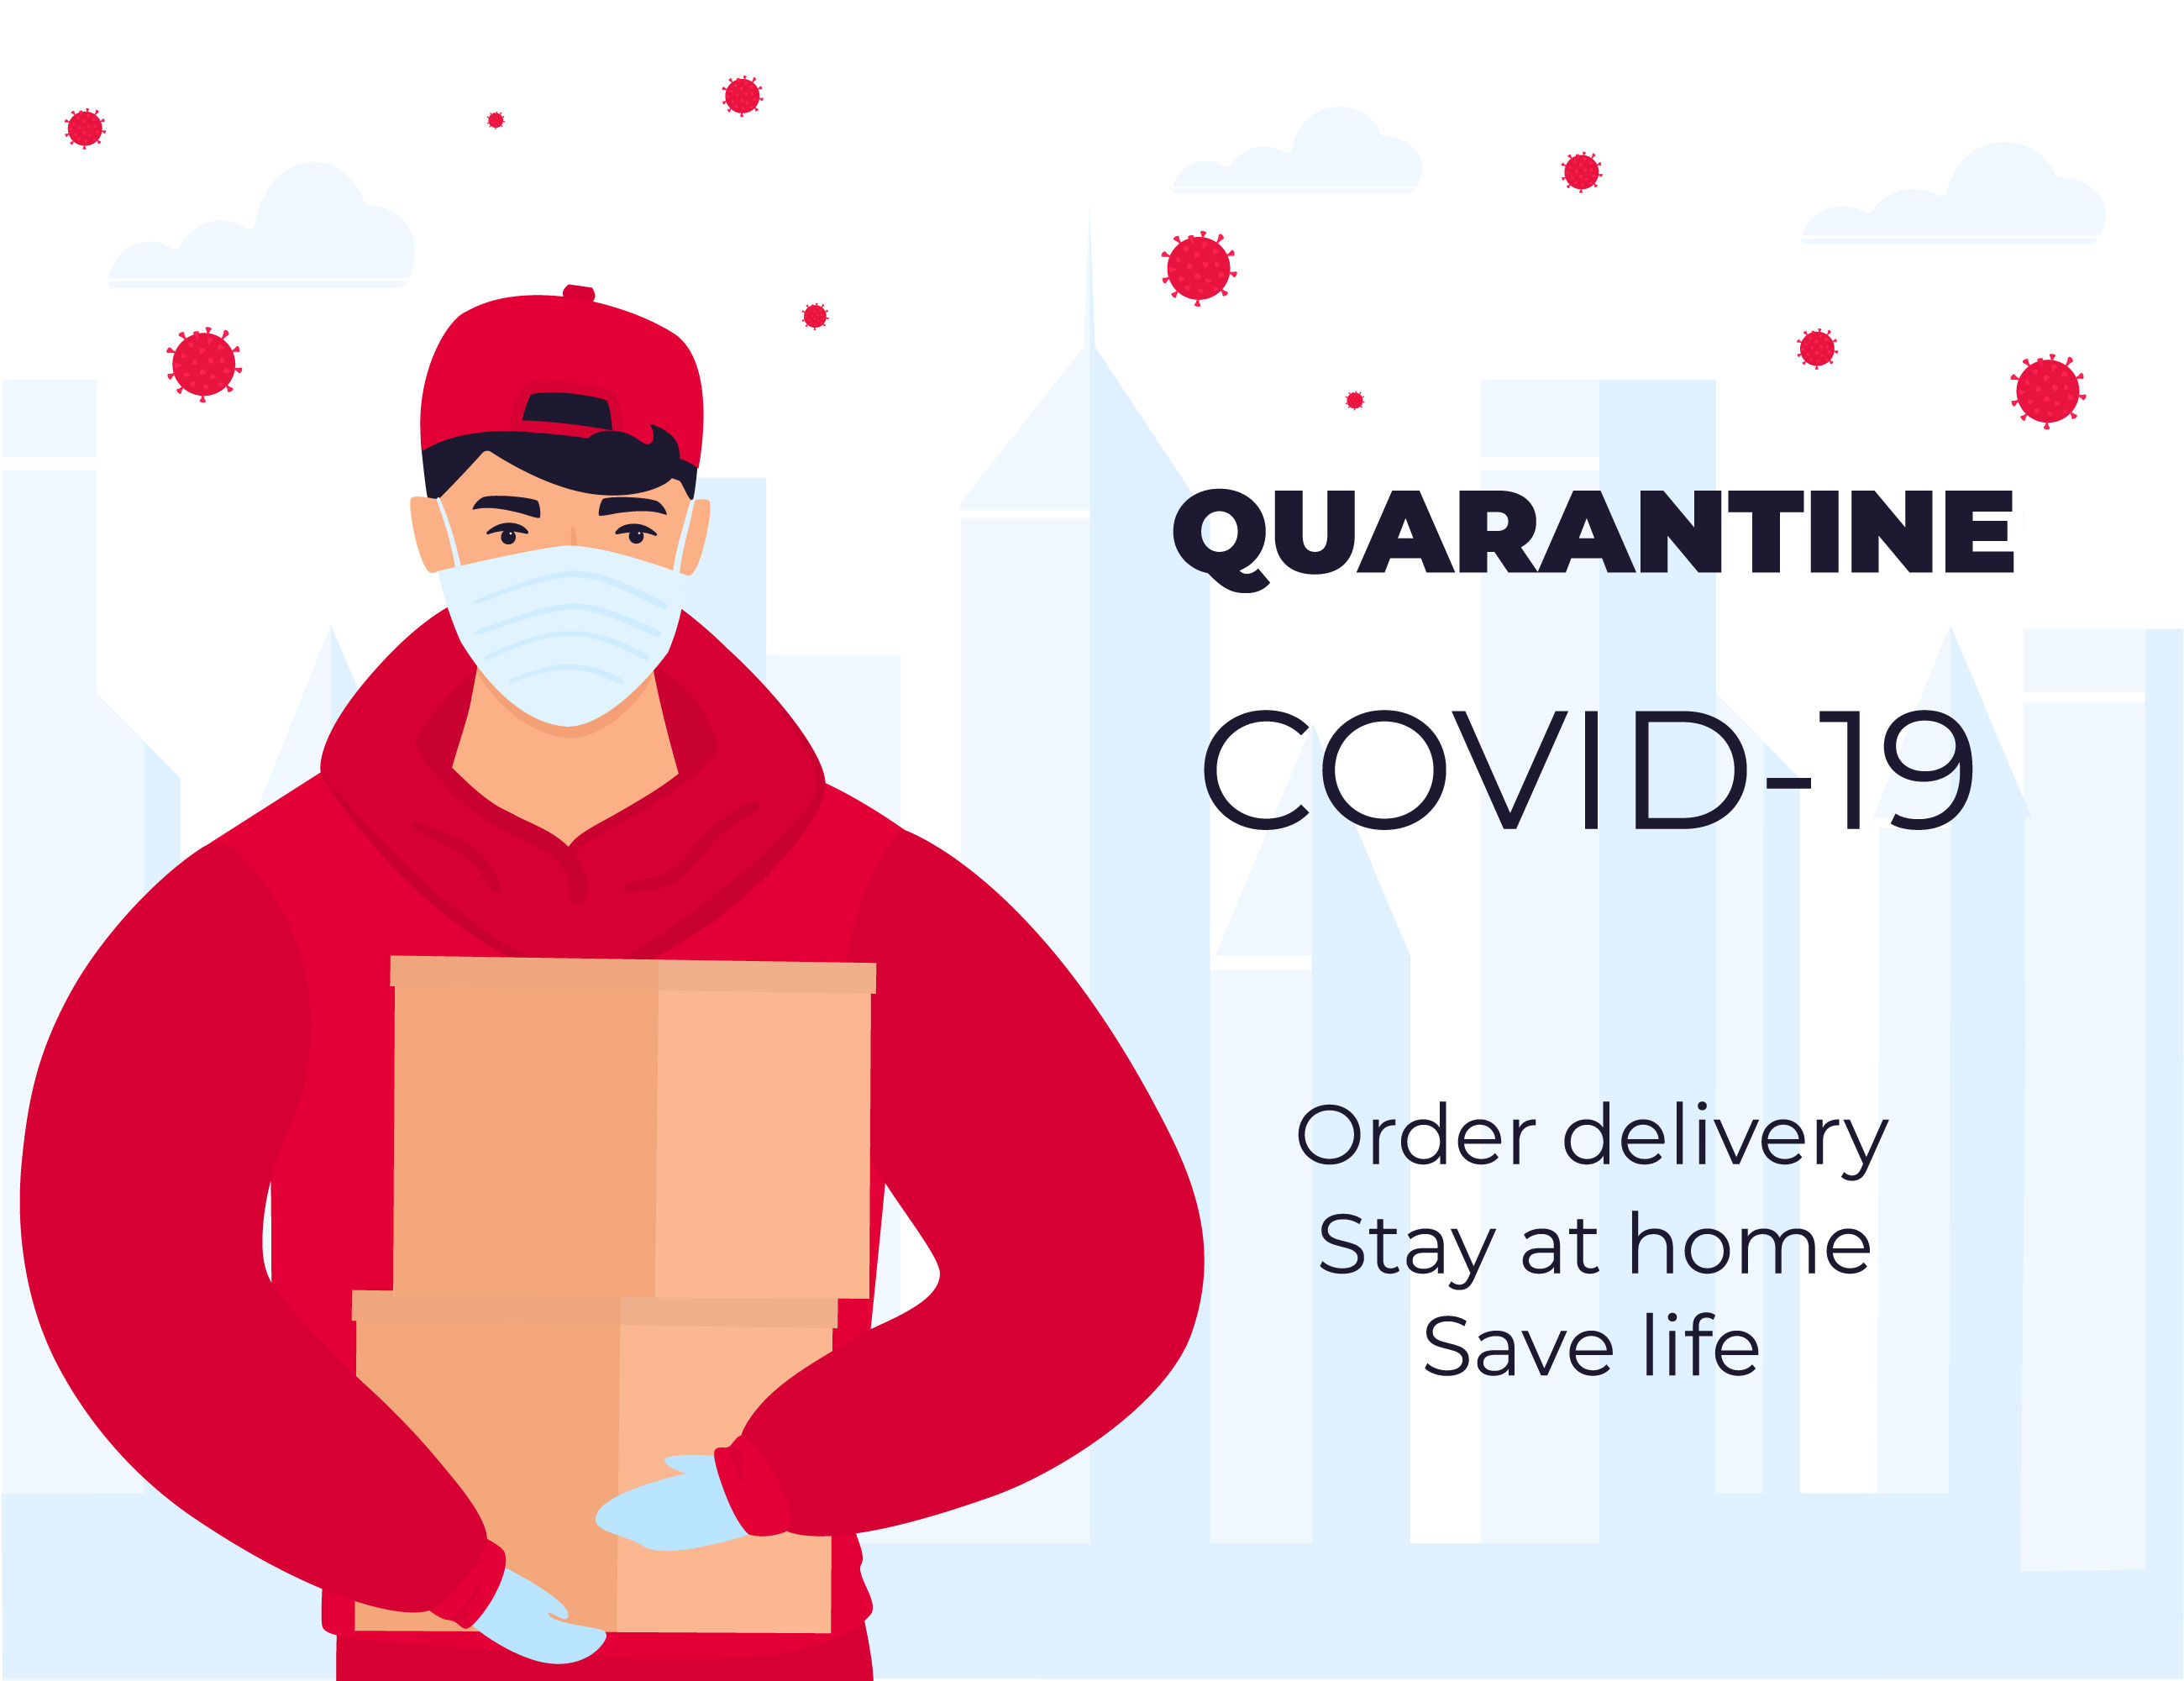 ​Shipping Service impacts related to Covid-19